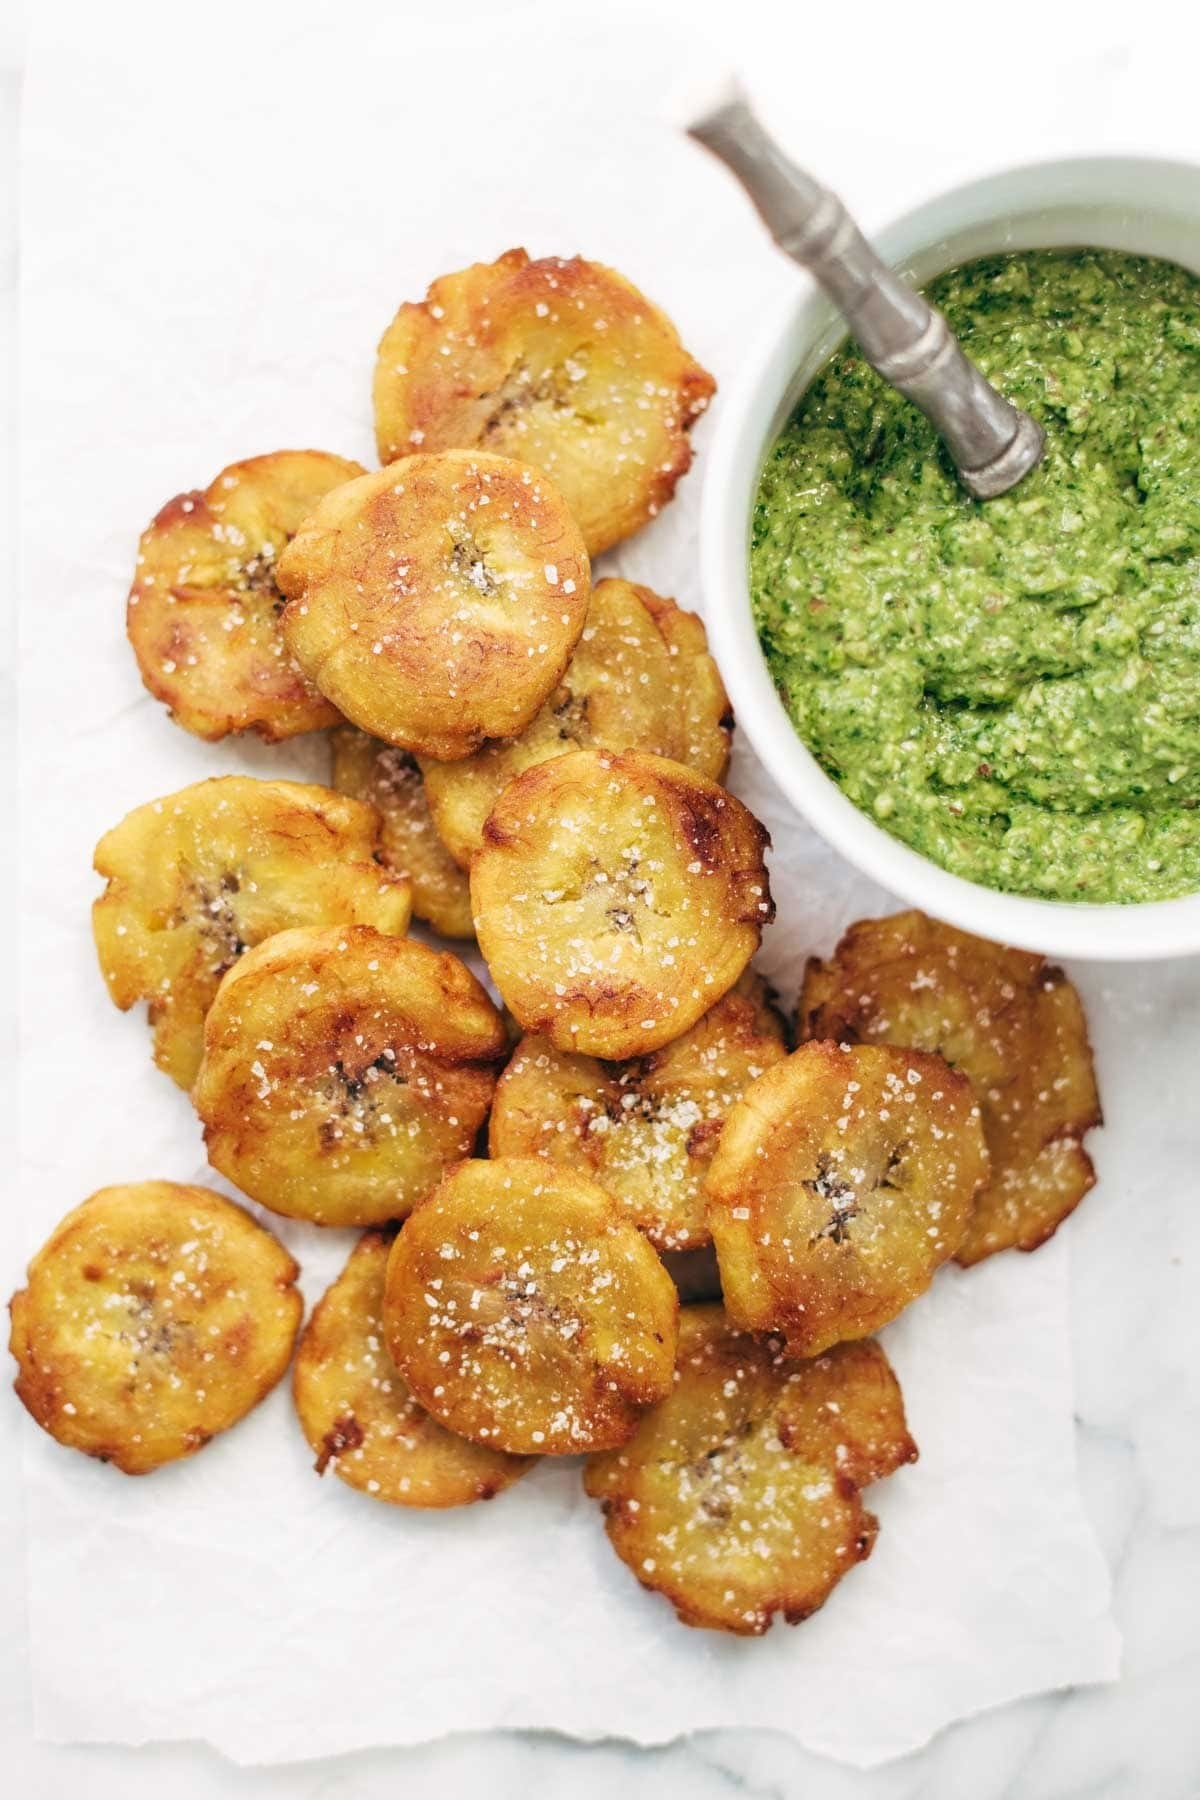 A pile of crispy, fried plantain slices topped with a healthy sprinkle of salt and a side of an herby, creamy dipping sauce